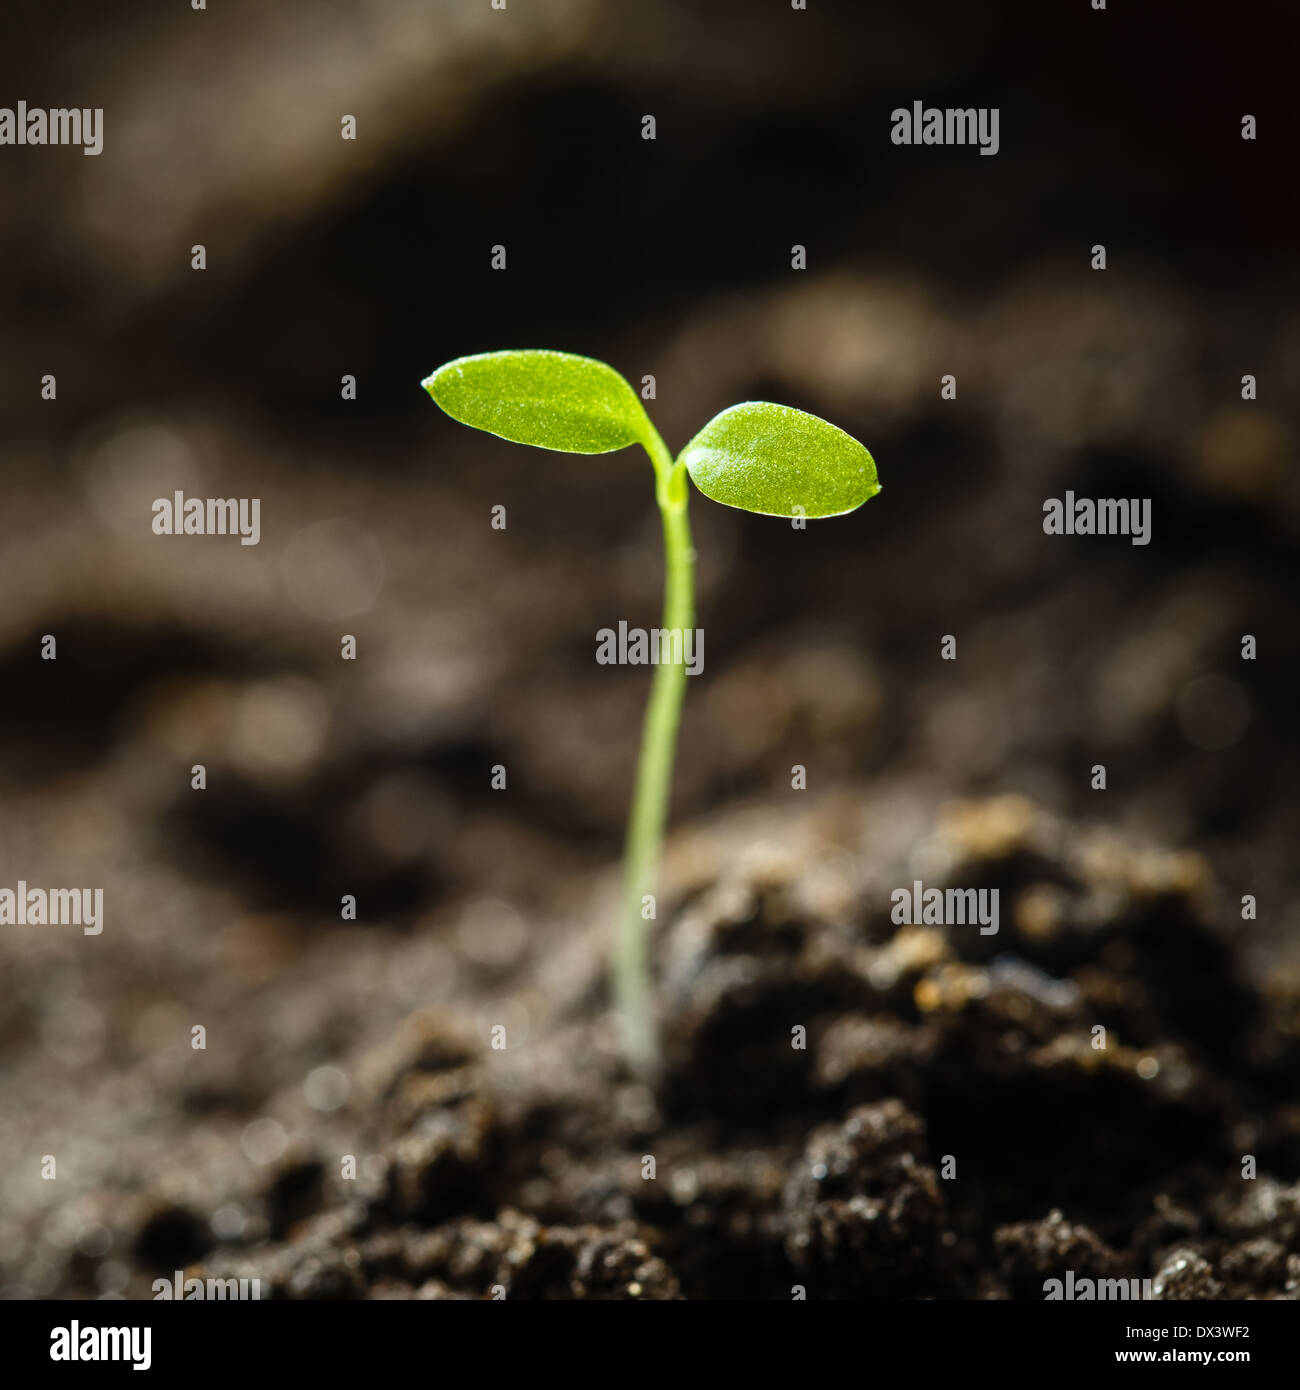 Green sprout growing from seed isolate on white background. Spring symbol, concept of new life - Stock Image